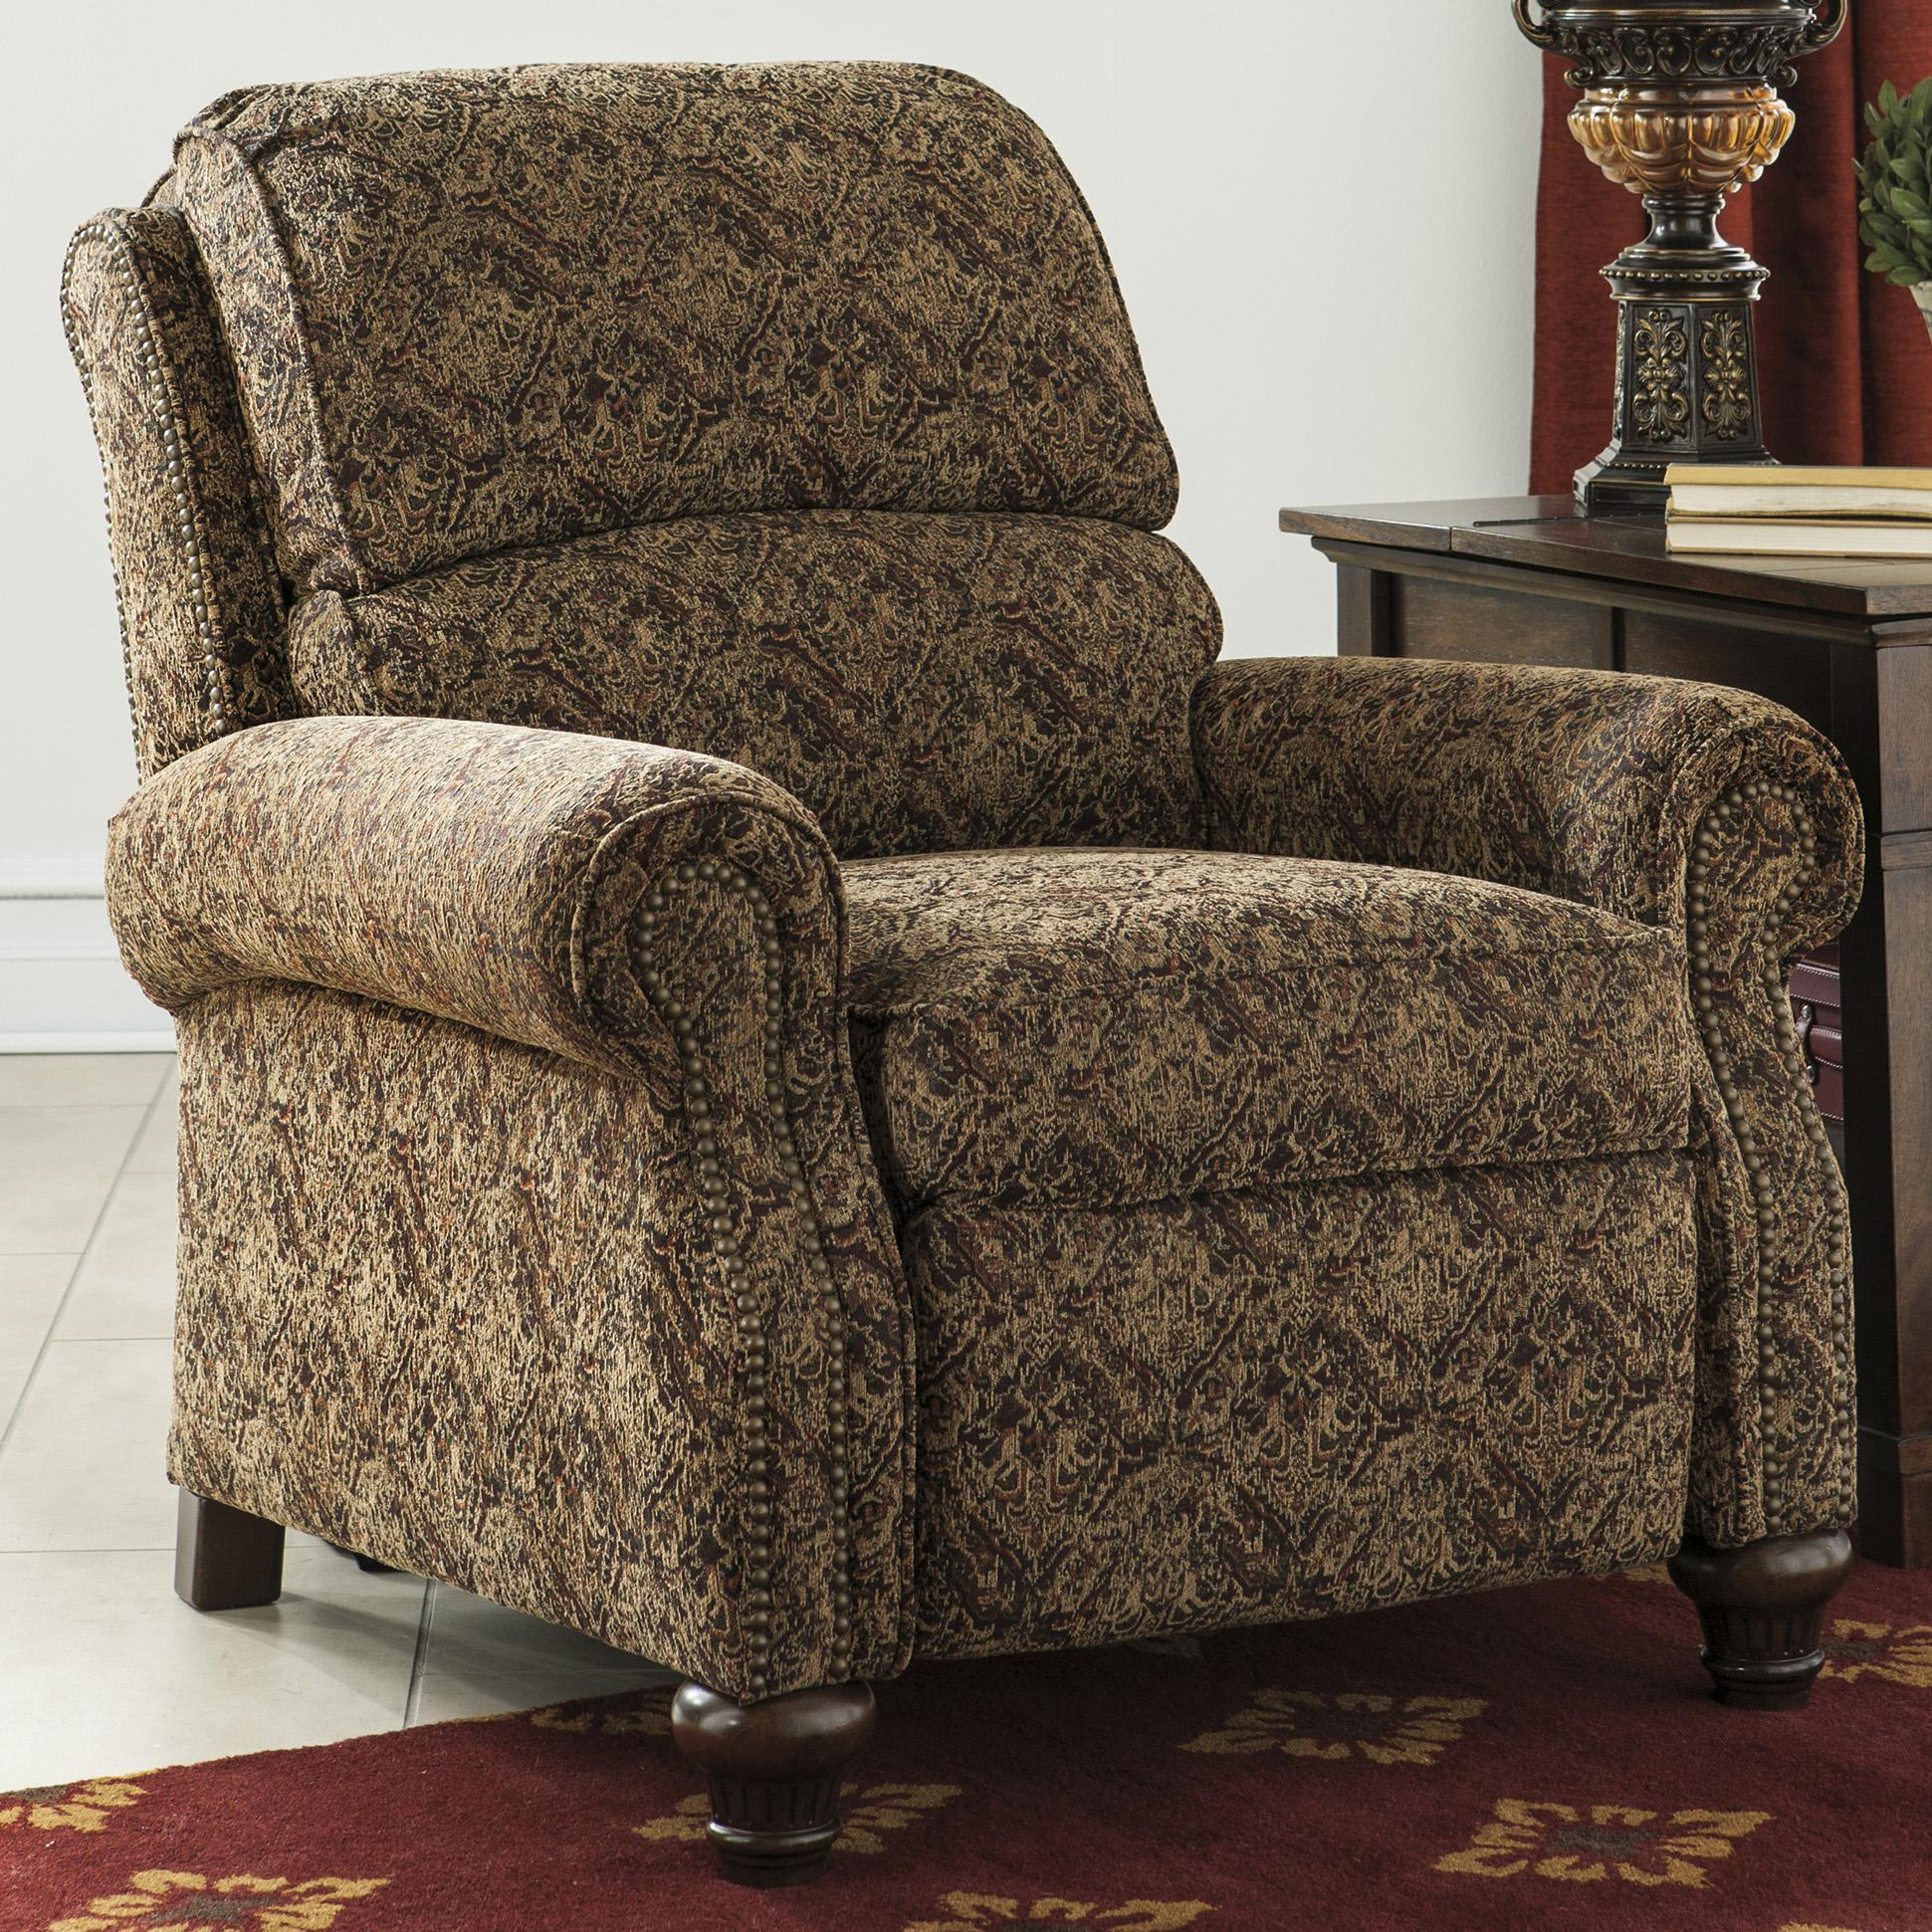 furniture gallery leg recliner watch preston lane by stores home low